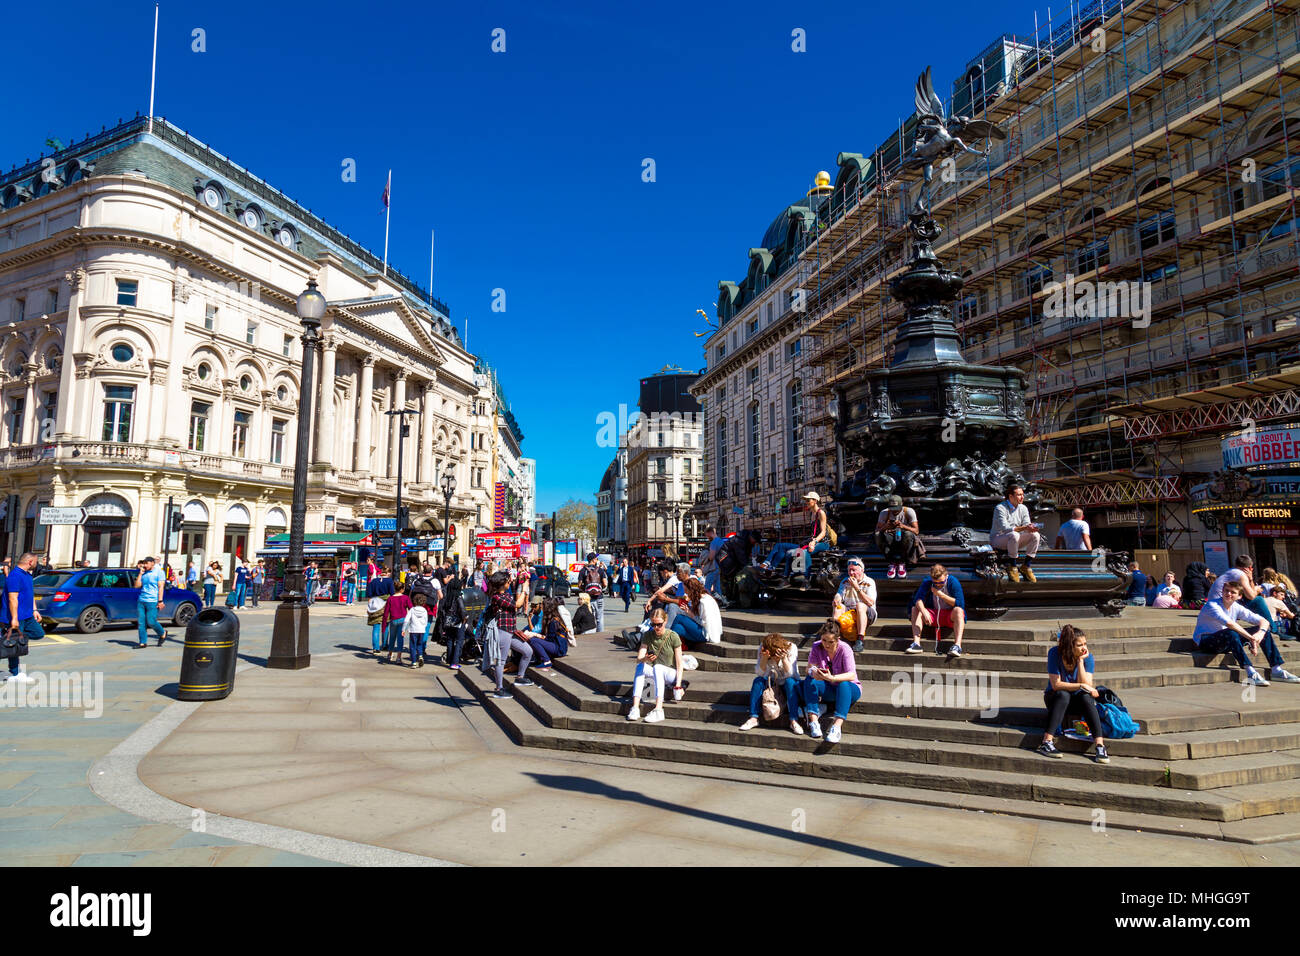 Busy Piccadilly Circus with tourists sitting on the steps of Shaftesbury Memorial Fountain, London, UK - Stock Image